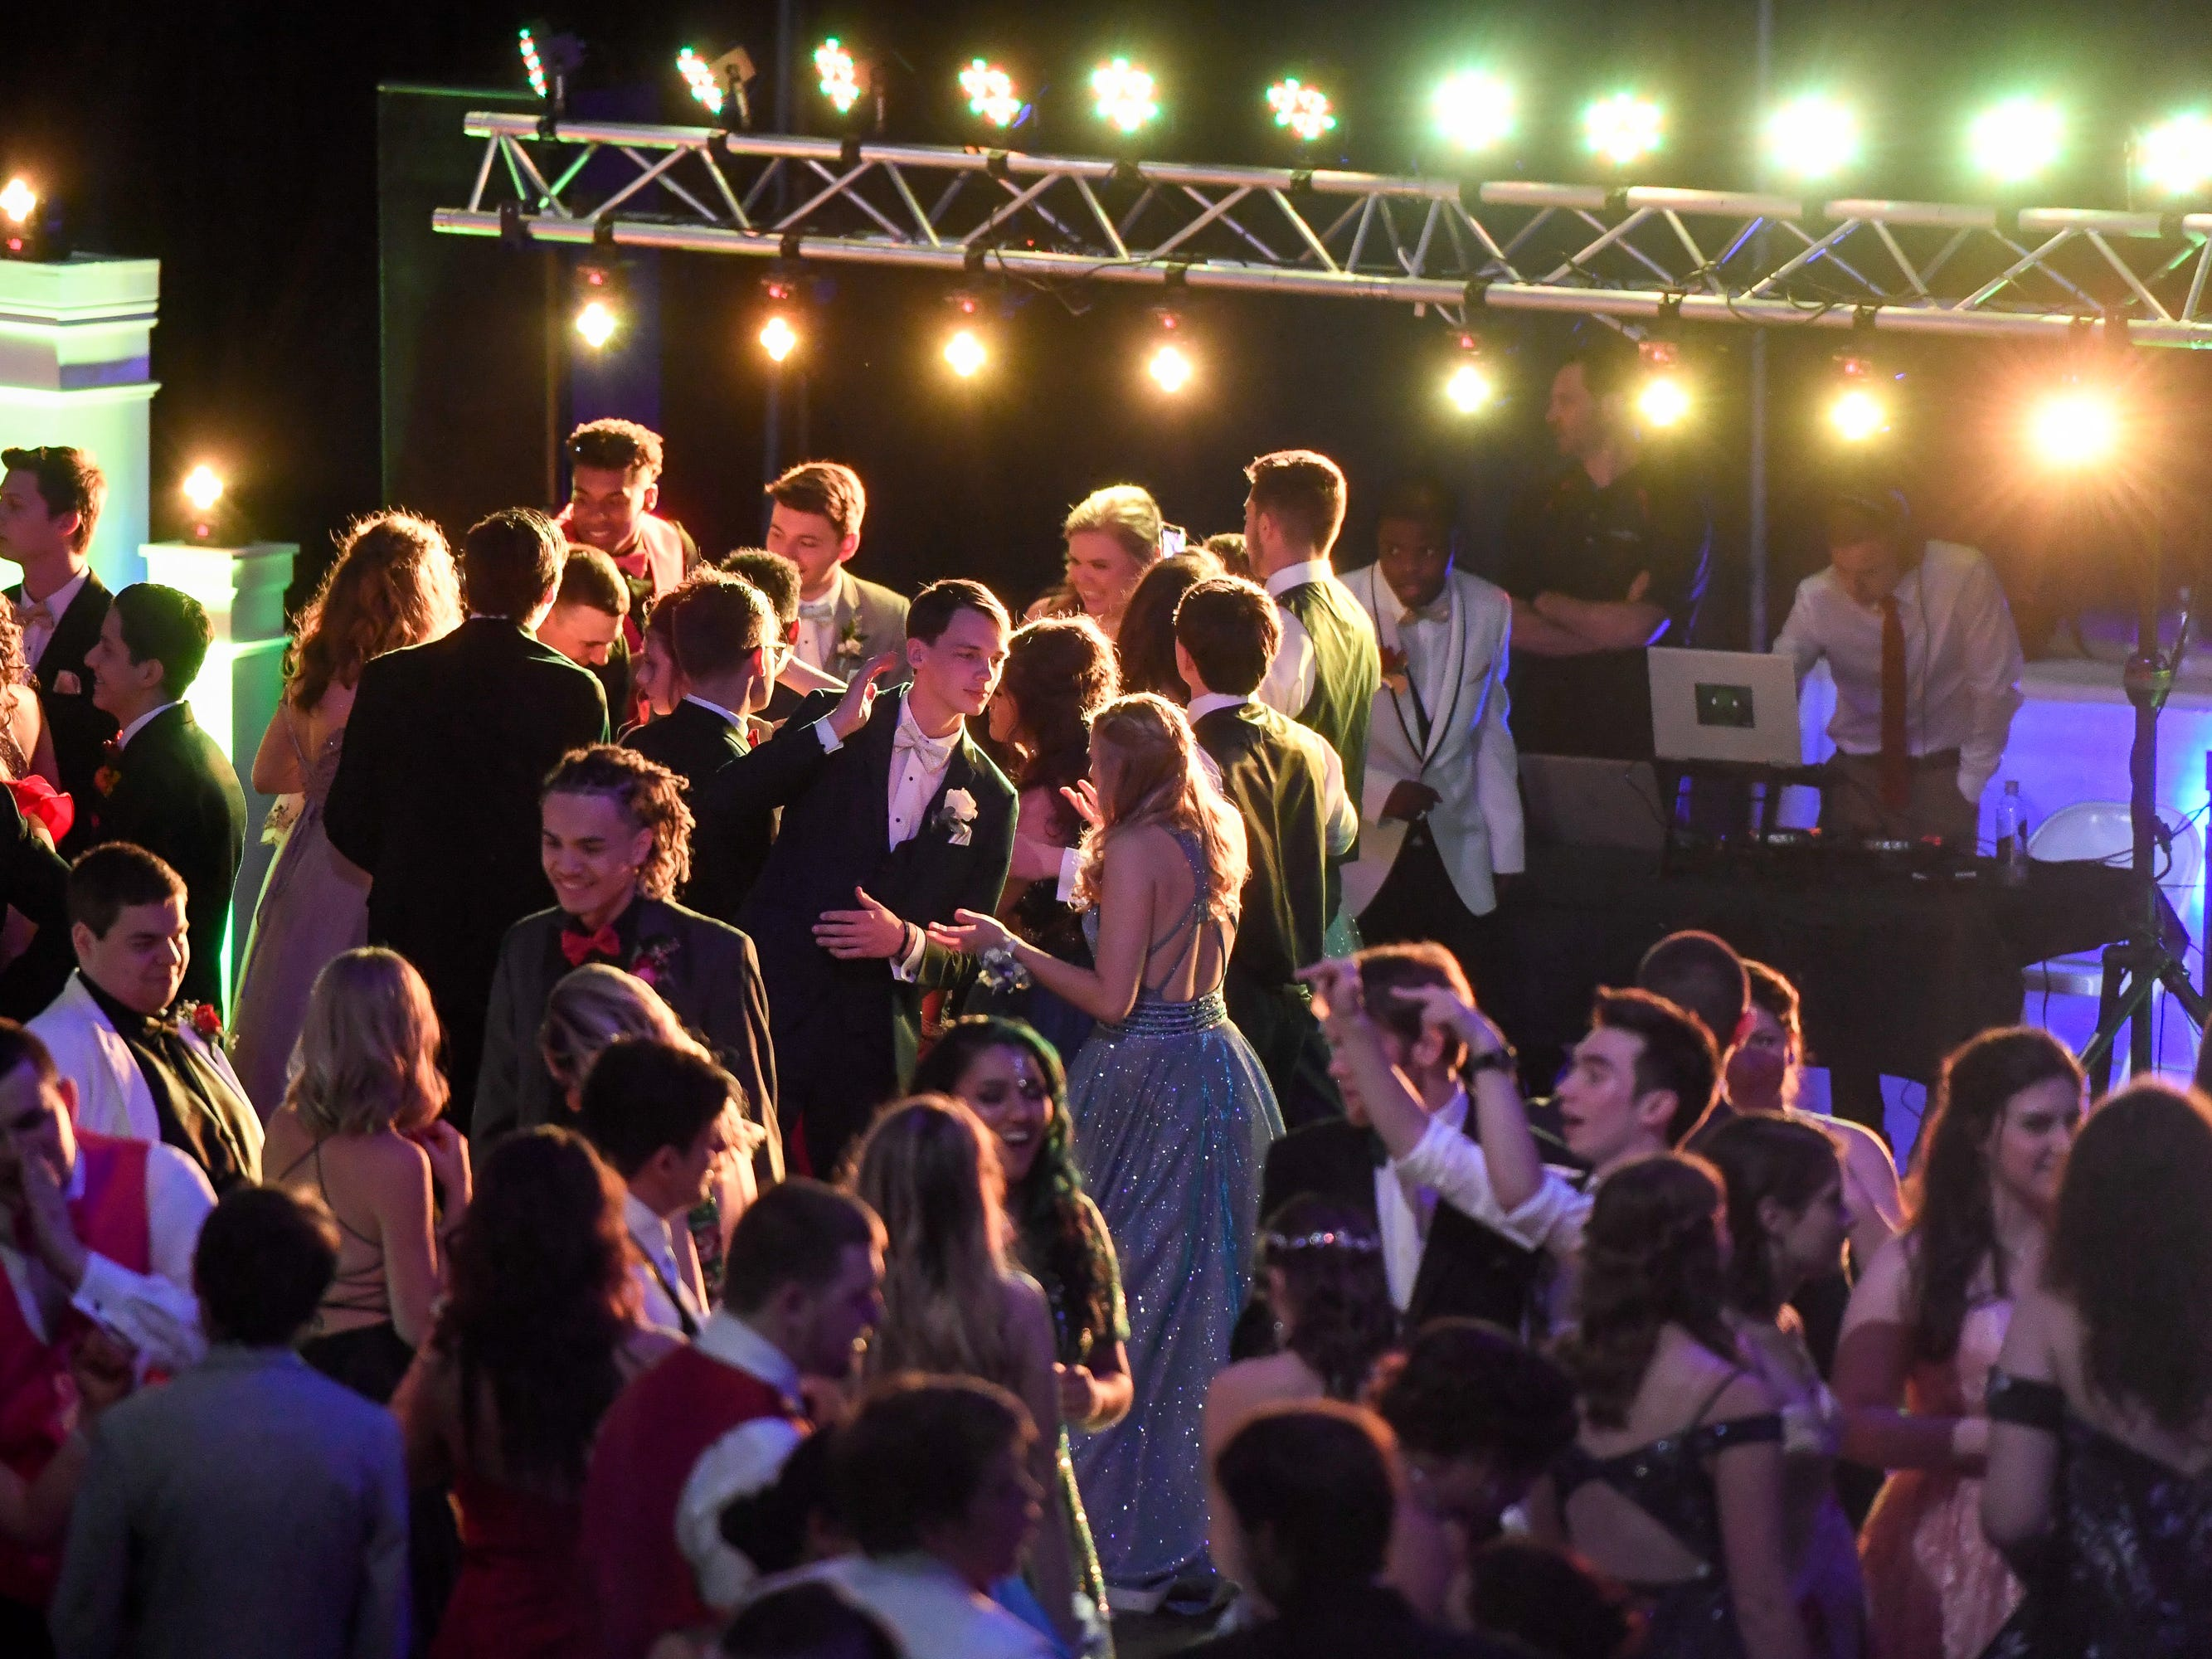 Dancers at the Henderson County High Prom held at Colonel Gym Saturday, April 13, 2019.